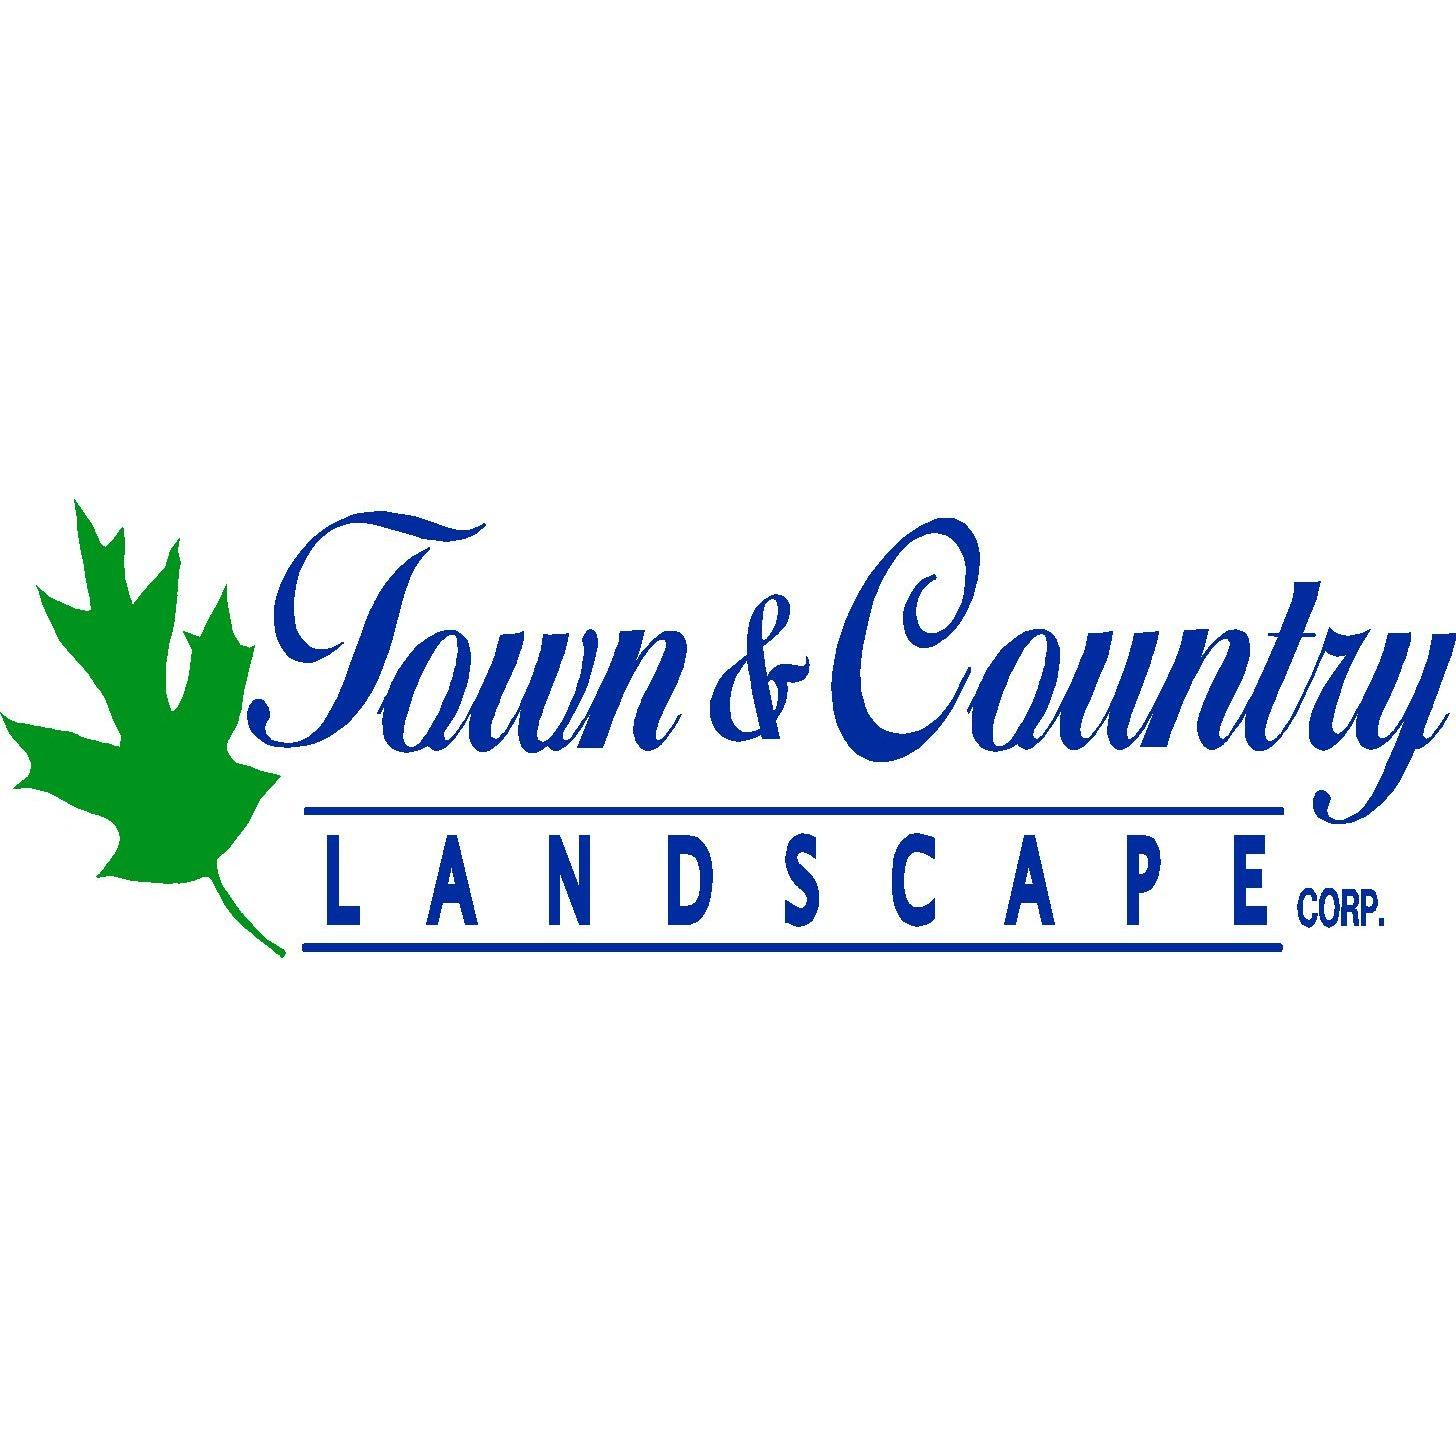 Town & Country Landscape Corp